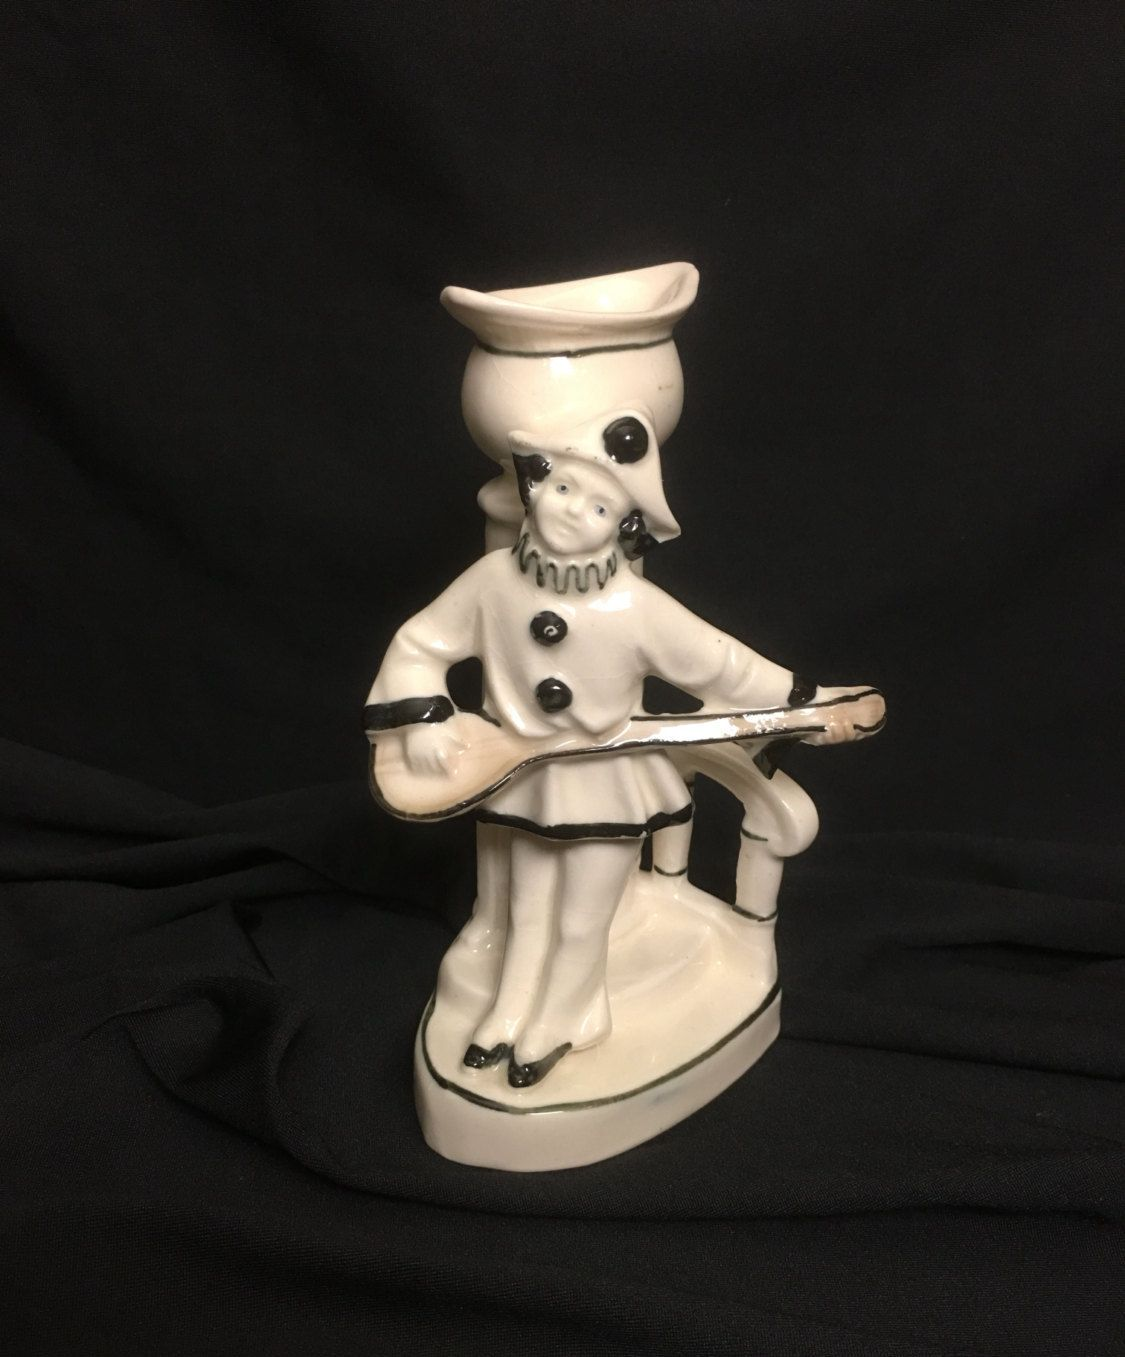 Ceramic white and black pierrot clown with lute vase by